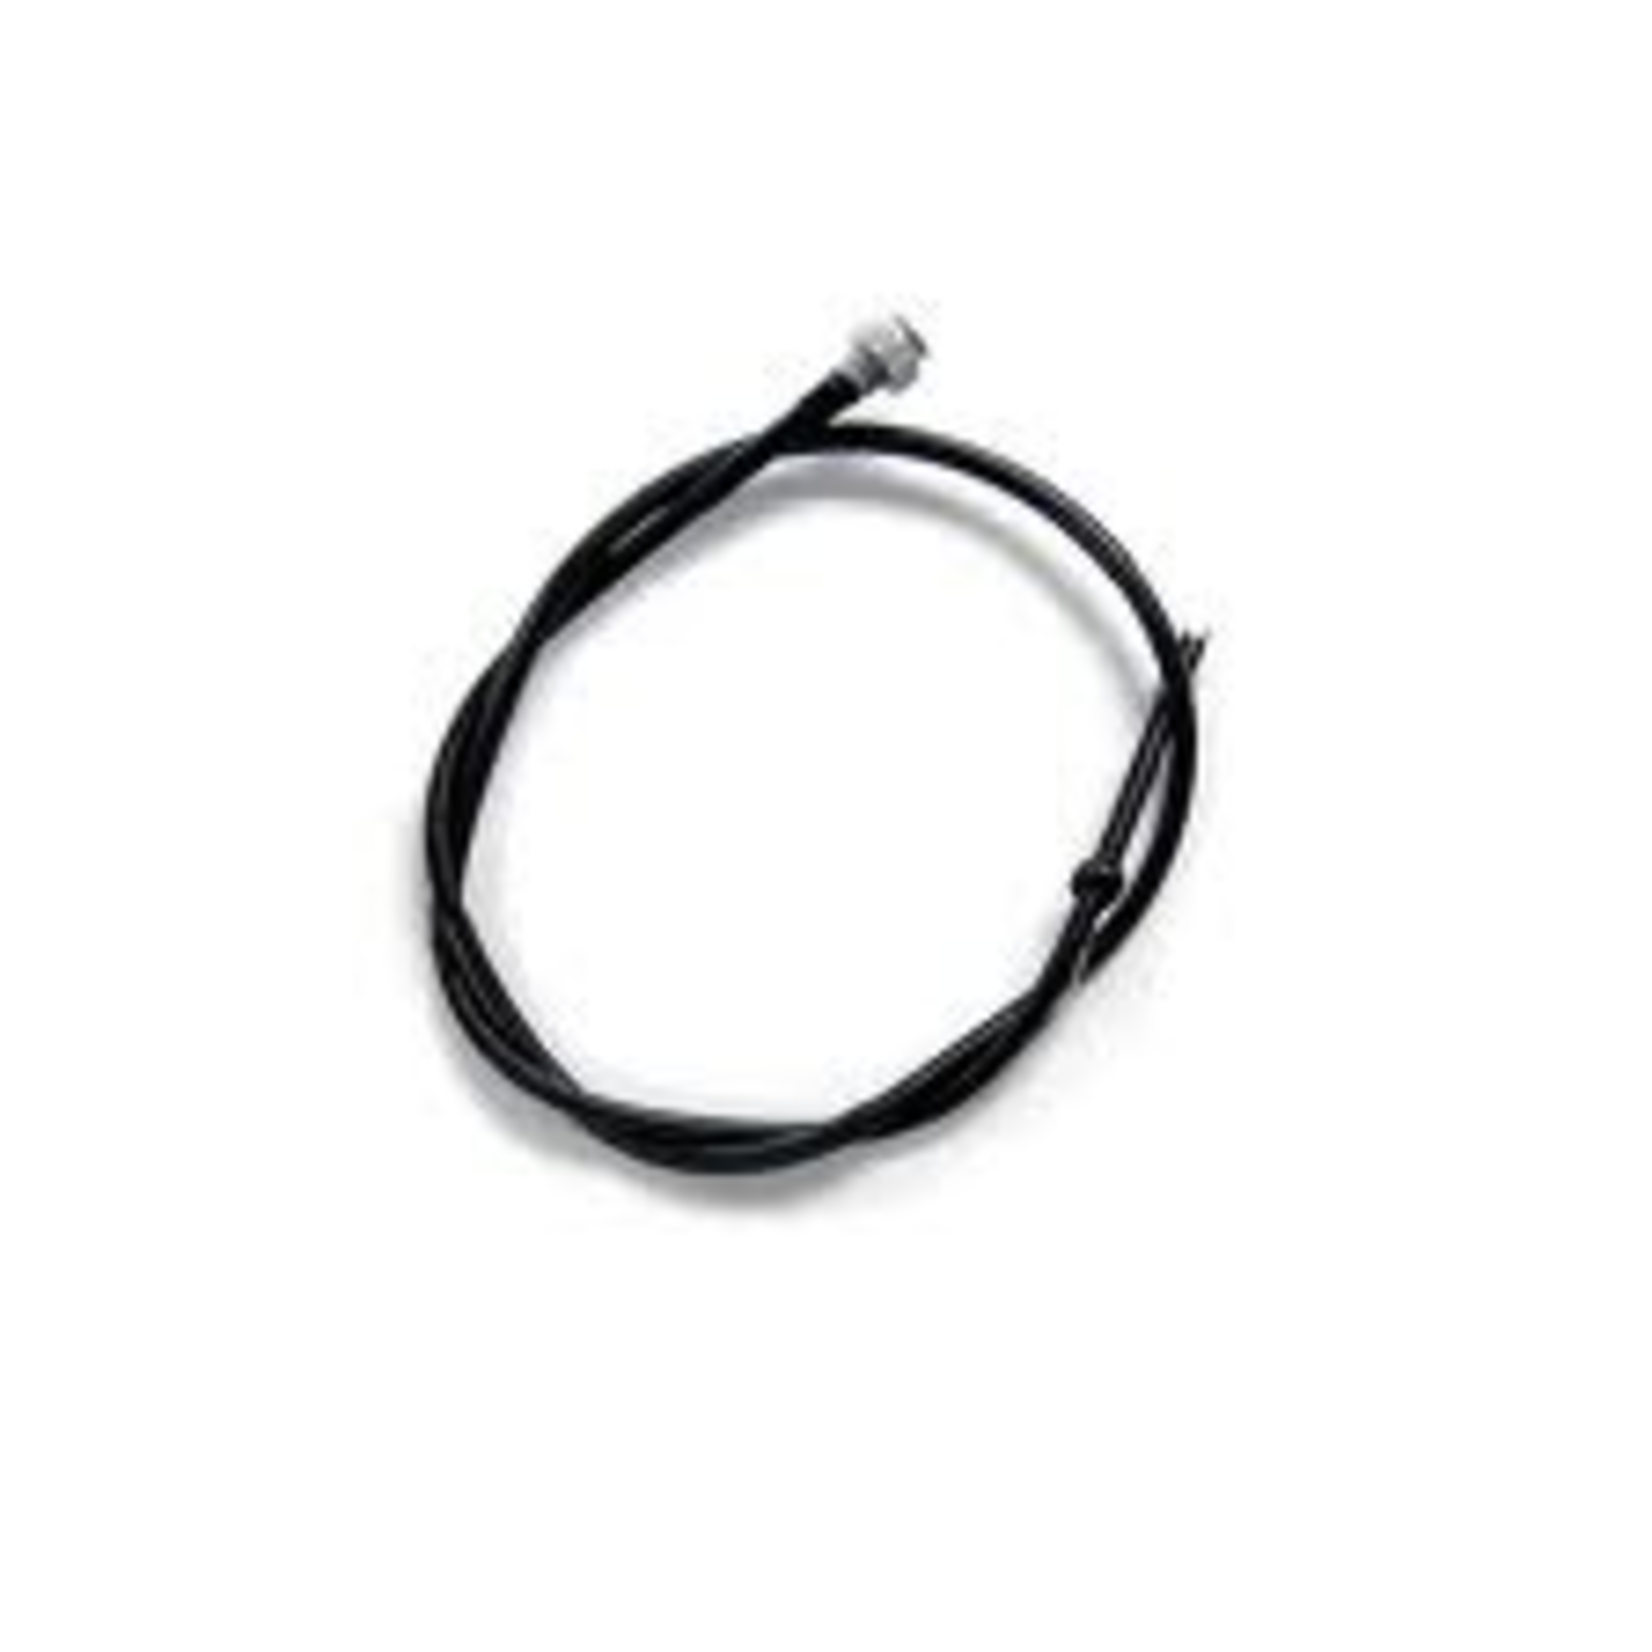 Parts Speedometer Cable, GTS